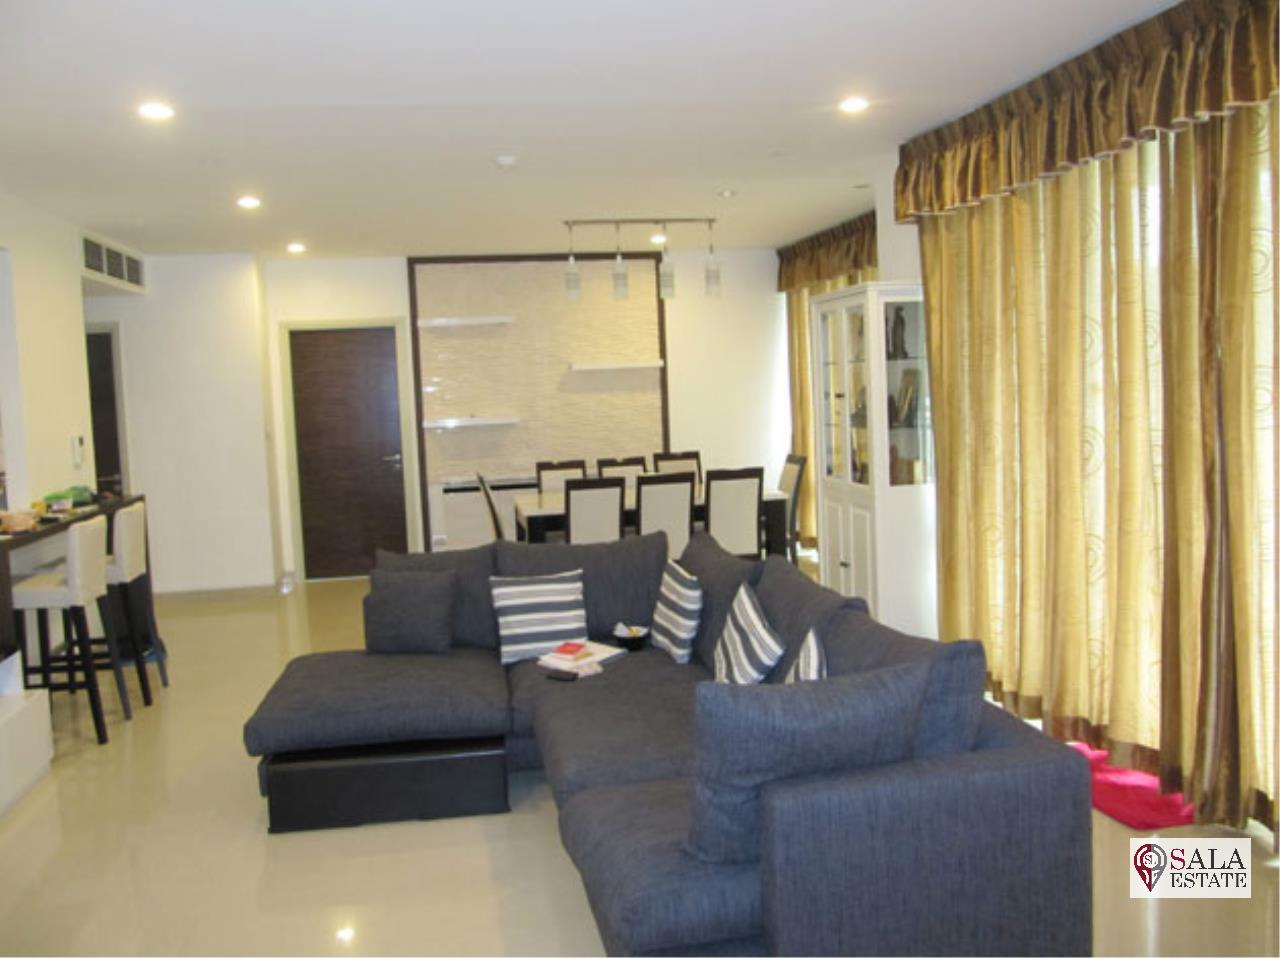 SALA ESTATE Agency's WATERMARK CHAOPHRAYA RIVER – RIVERSIDE-NEAR ICON SIAM,豪华公寓,河景房, 3卧3卫,家具齐全 4